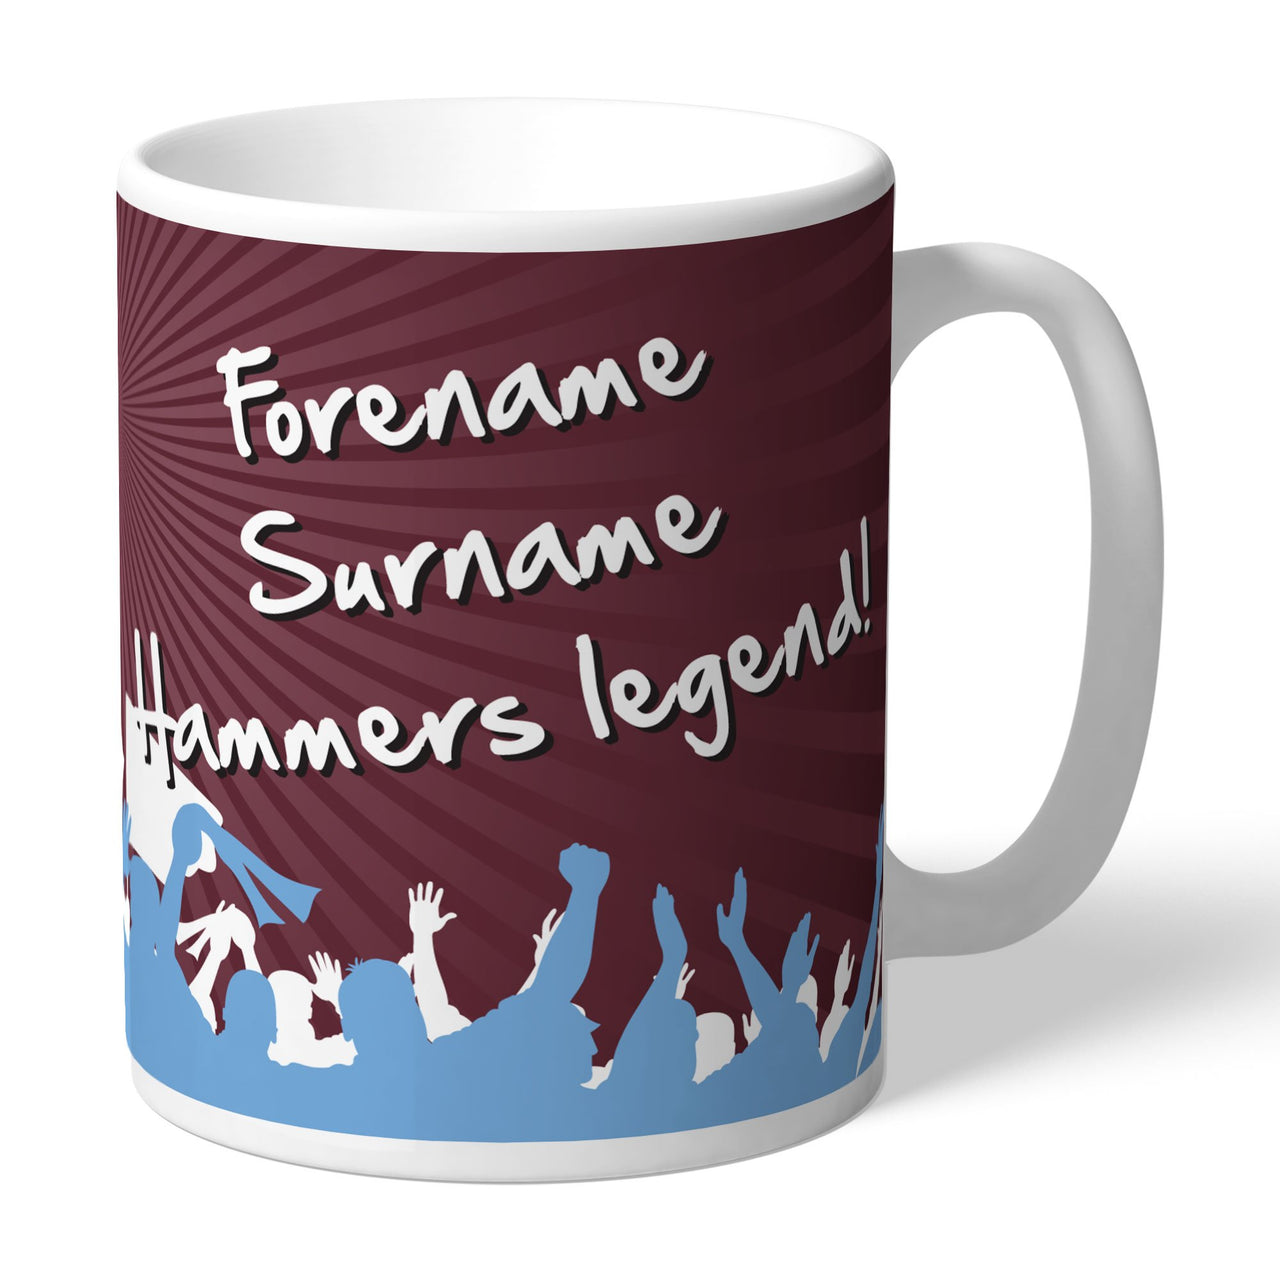 West Ham United FC Legend Mugs, Gifts